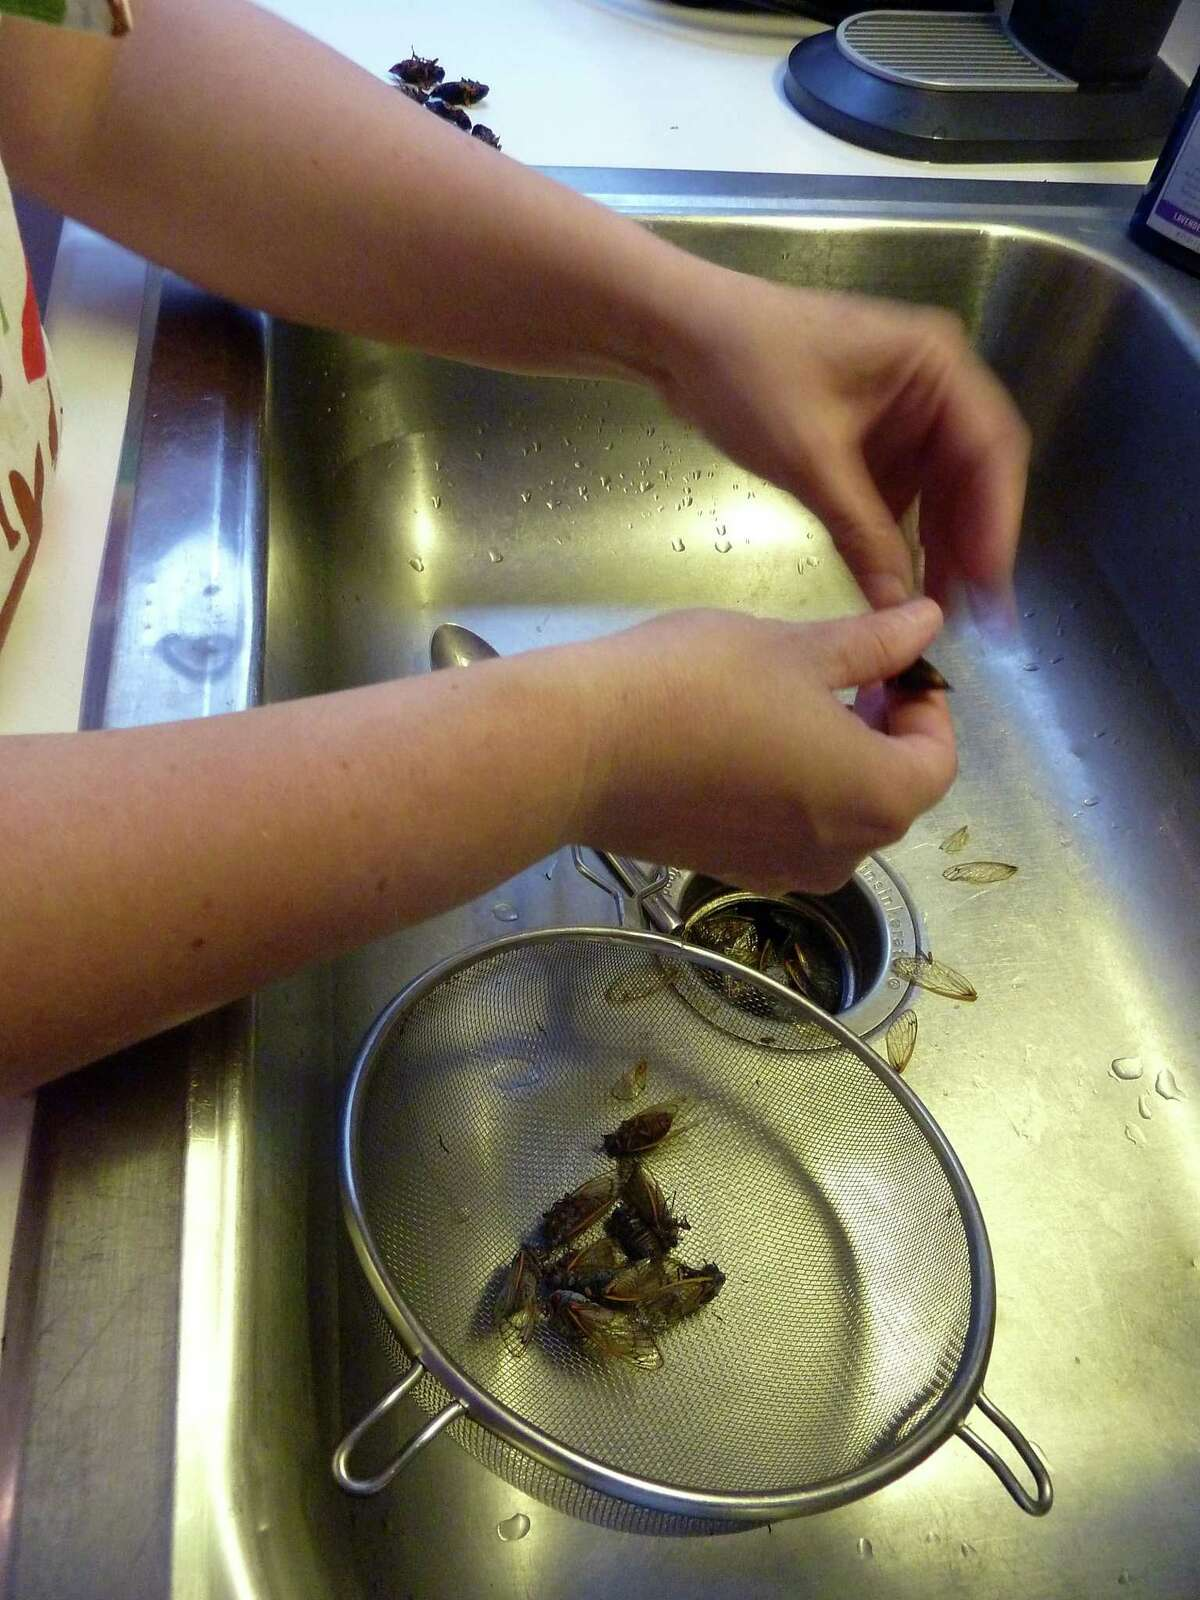 """Biologist Jenna Jadin plucks wings and legs from blanched cicadas at her Washington, D.C. home in 2013. Jadin wrote """"Cicada-Licious: Cooking and Enjoying Periodical Cicadas"""" in 2004."""